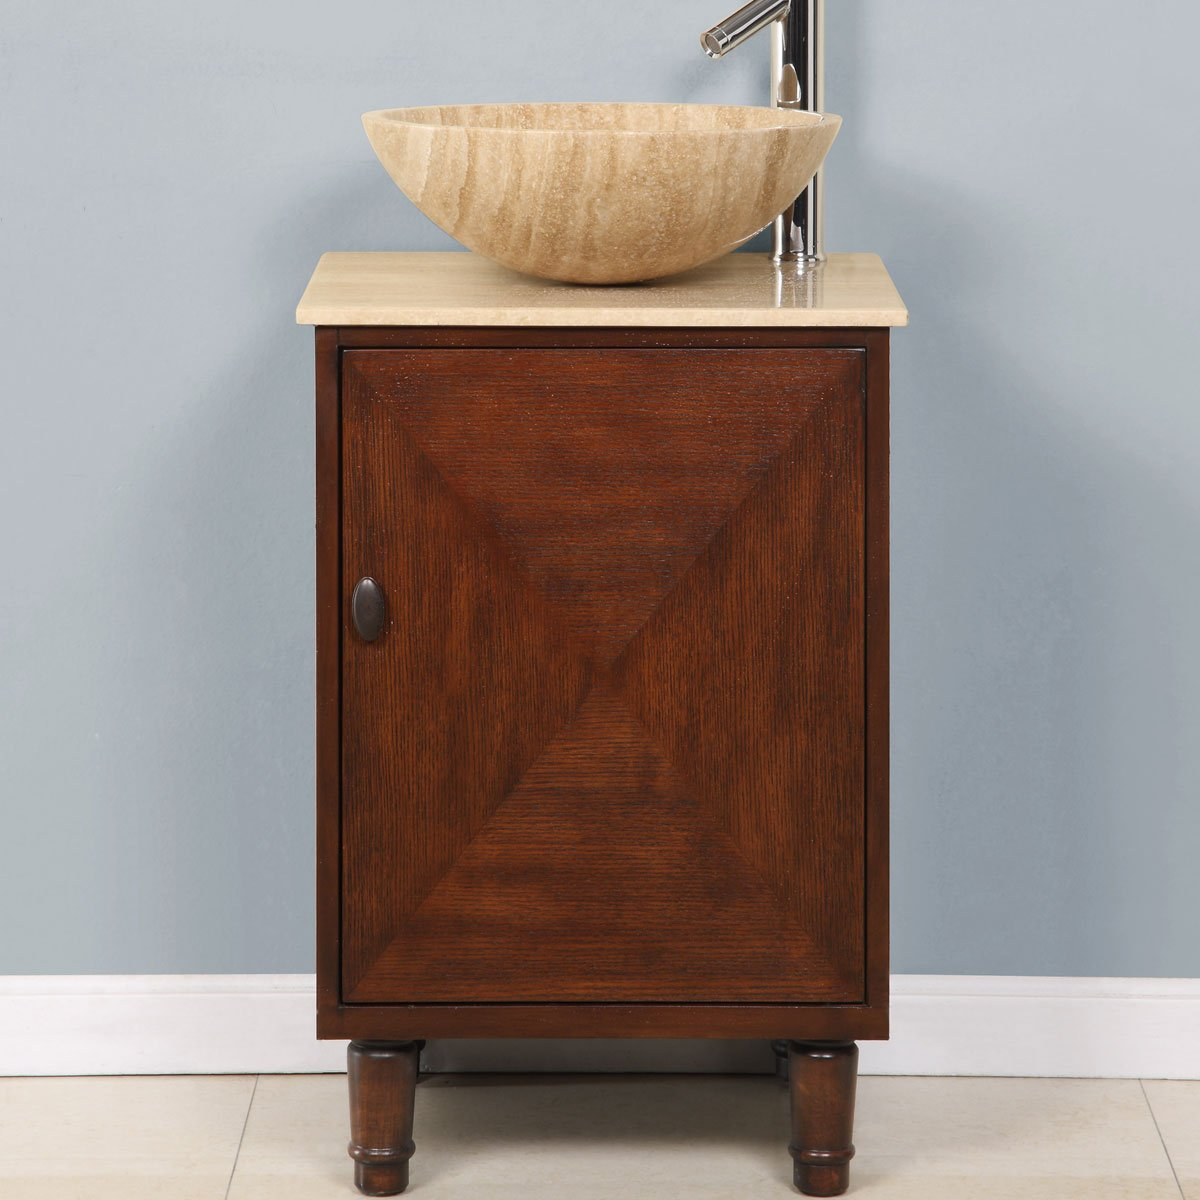 Silkroad Exclusive Travertine Stone Top Single Sink Bowl Vessel Bathroom Vanity with Cabinet, 20-Inch